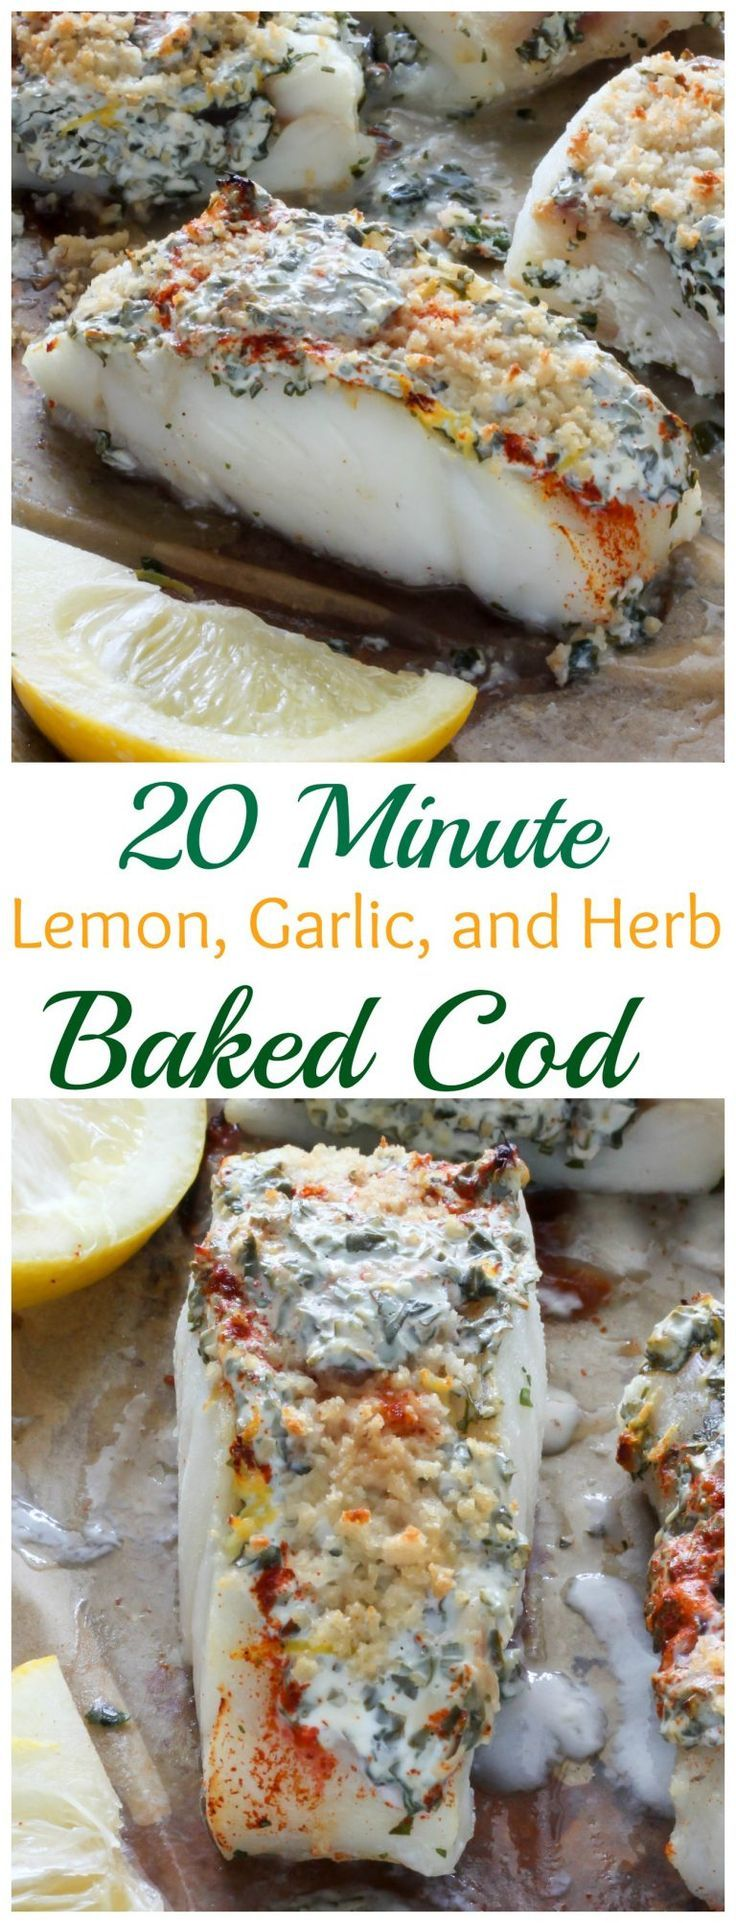 20 minute lemon, garlic, and herb baked cod!